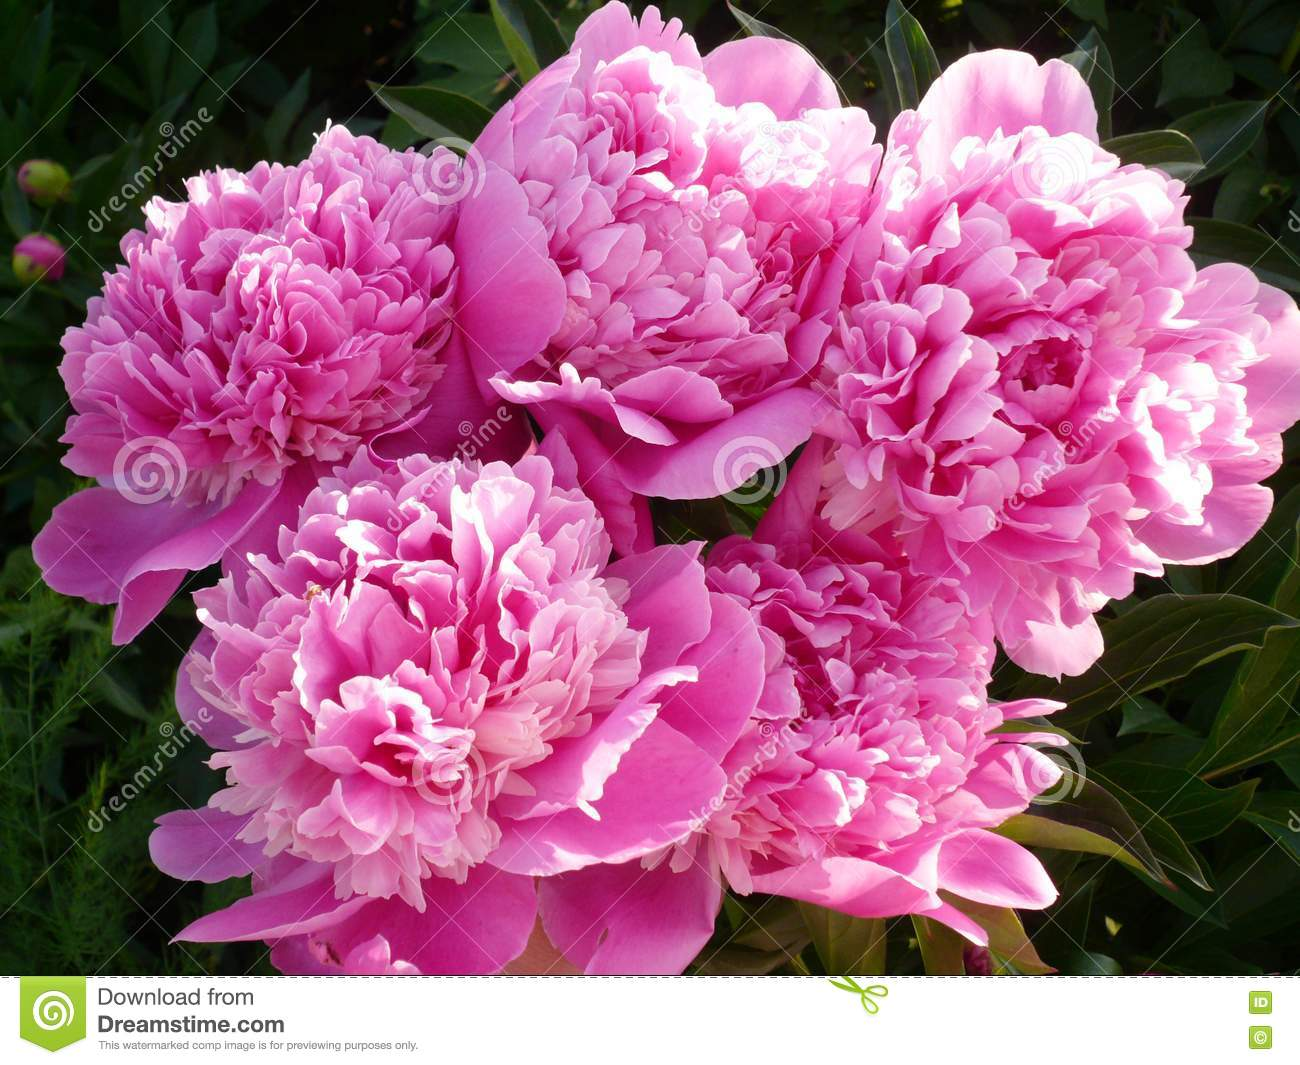 f83edd4f8b6 Stock Photography  Pink Peonies Picture. Image  17096332